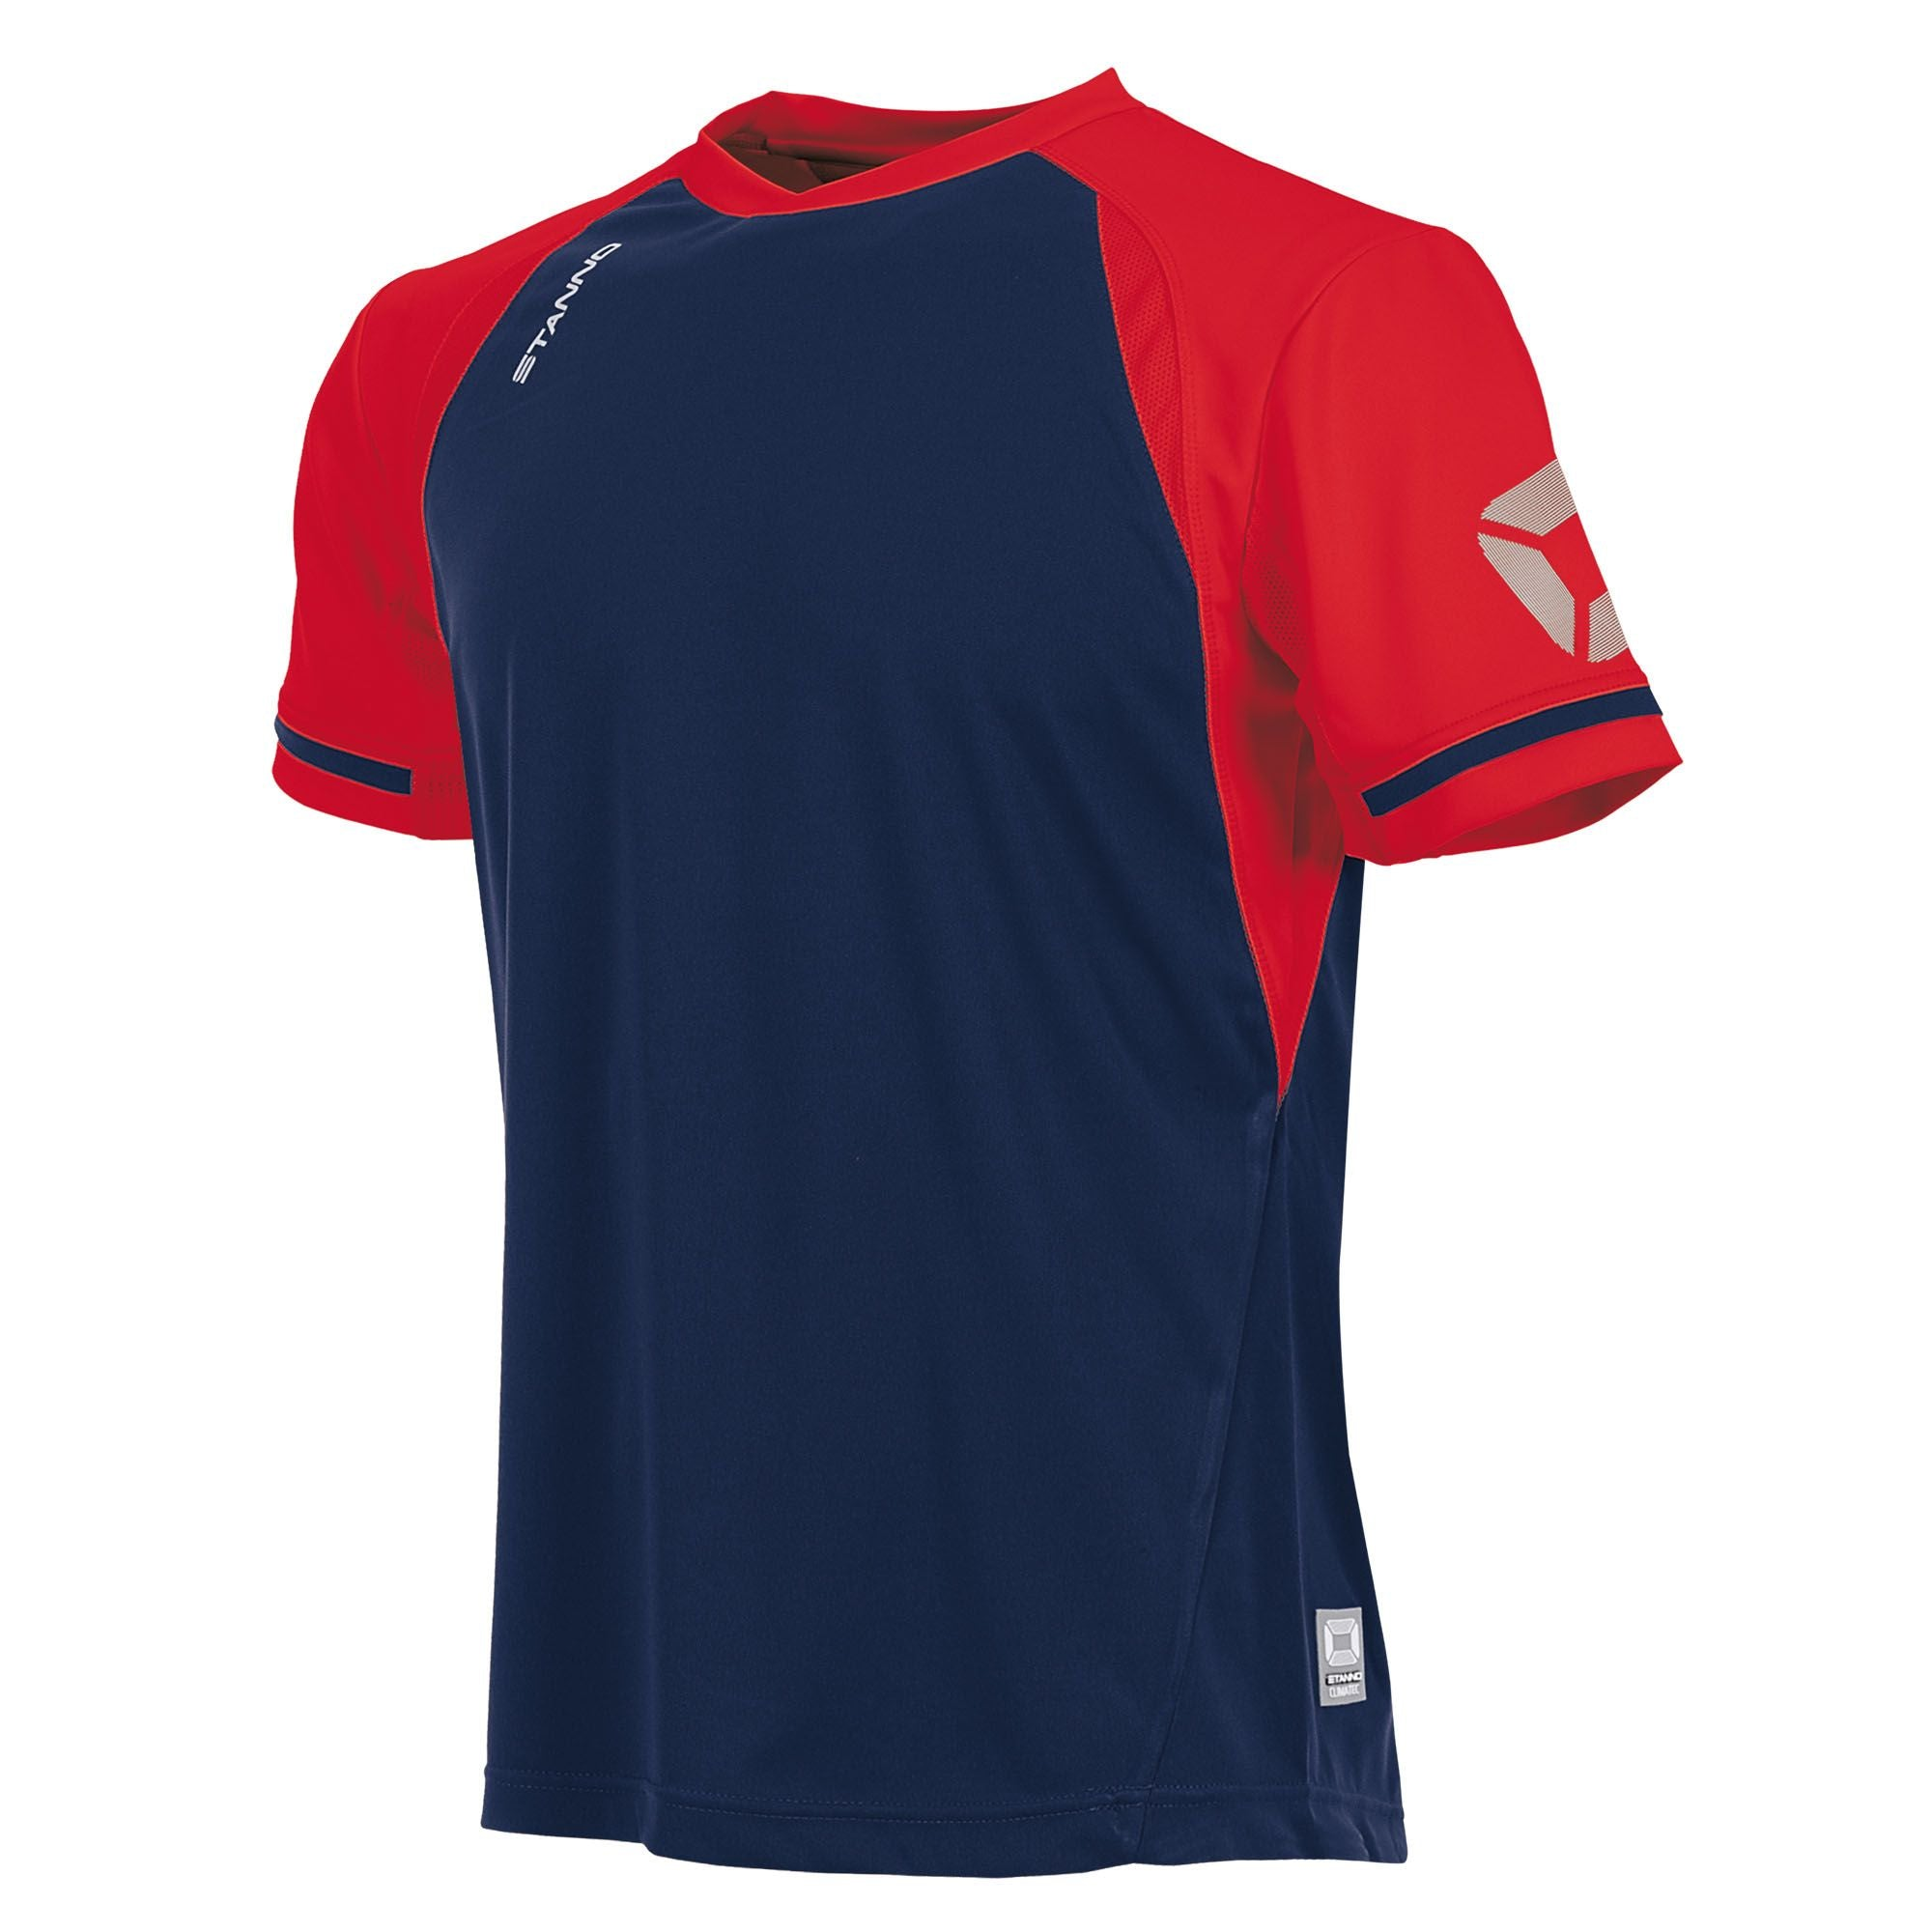 short sleeved Stanno Liga shirt in navy with contrast red sleeves and collar, Stadium logo on the sleeve.